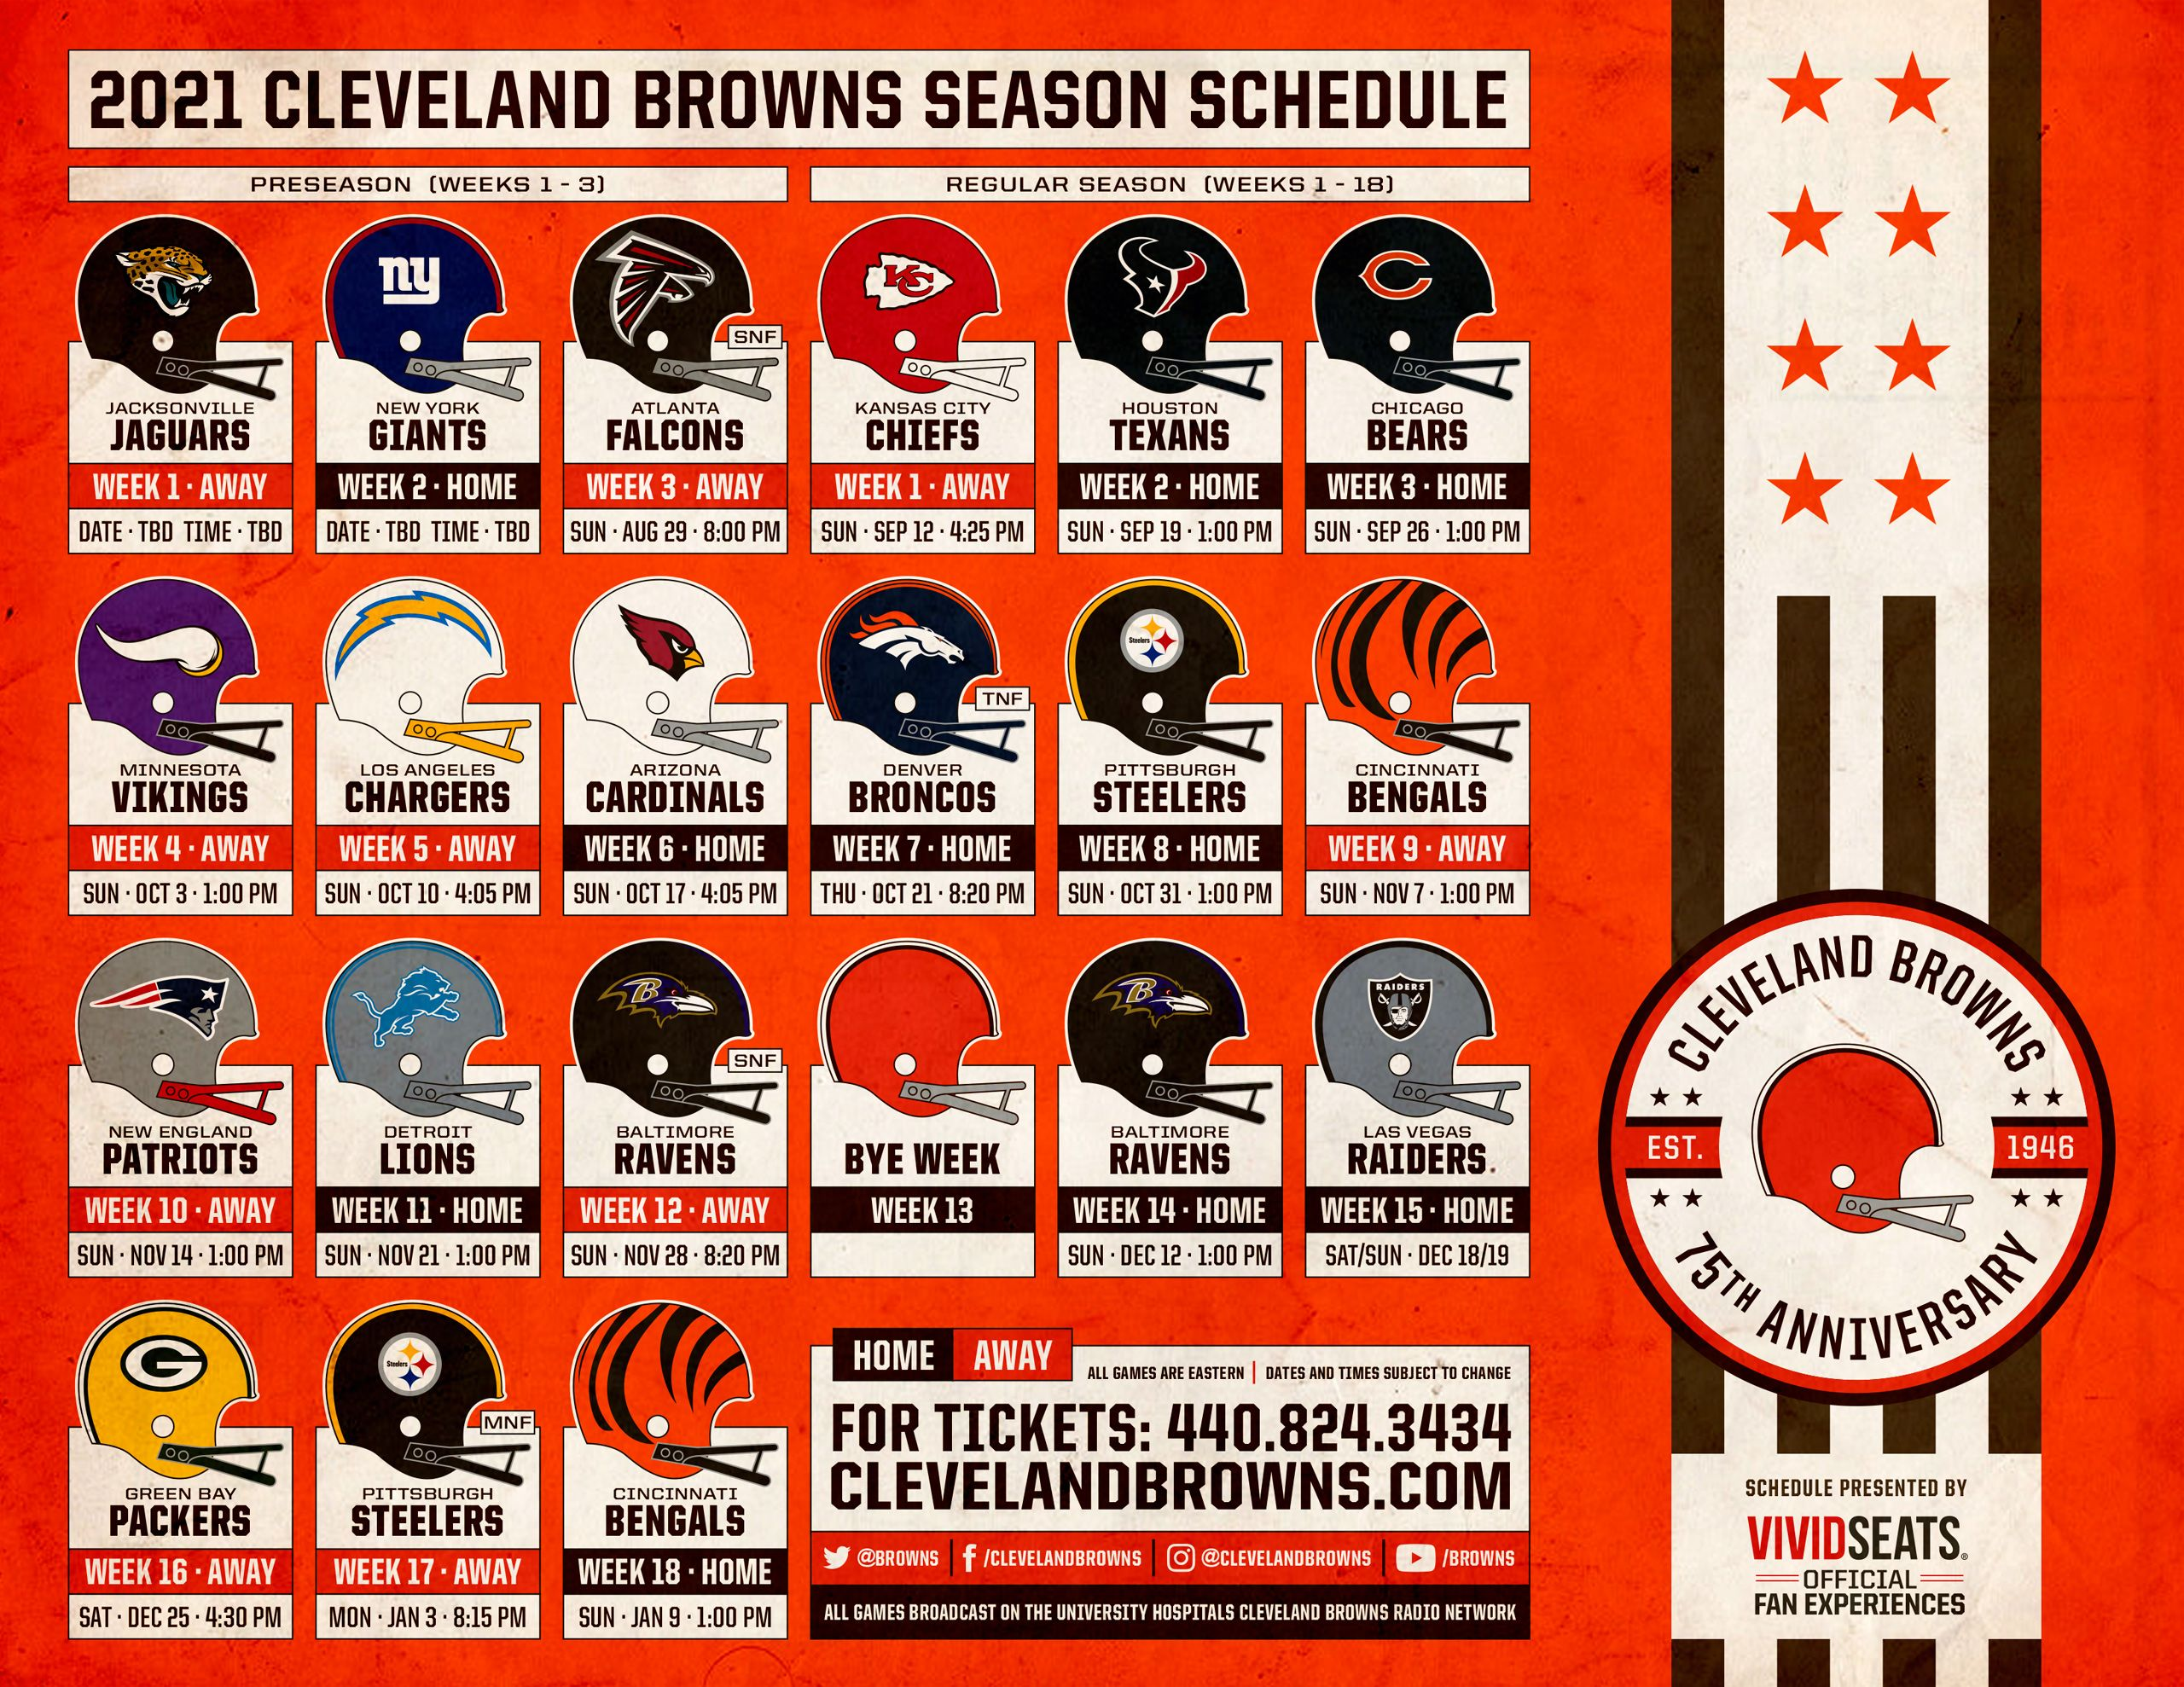 Download the Cleveland Browns 2021 Schedule